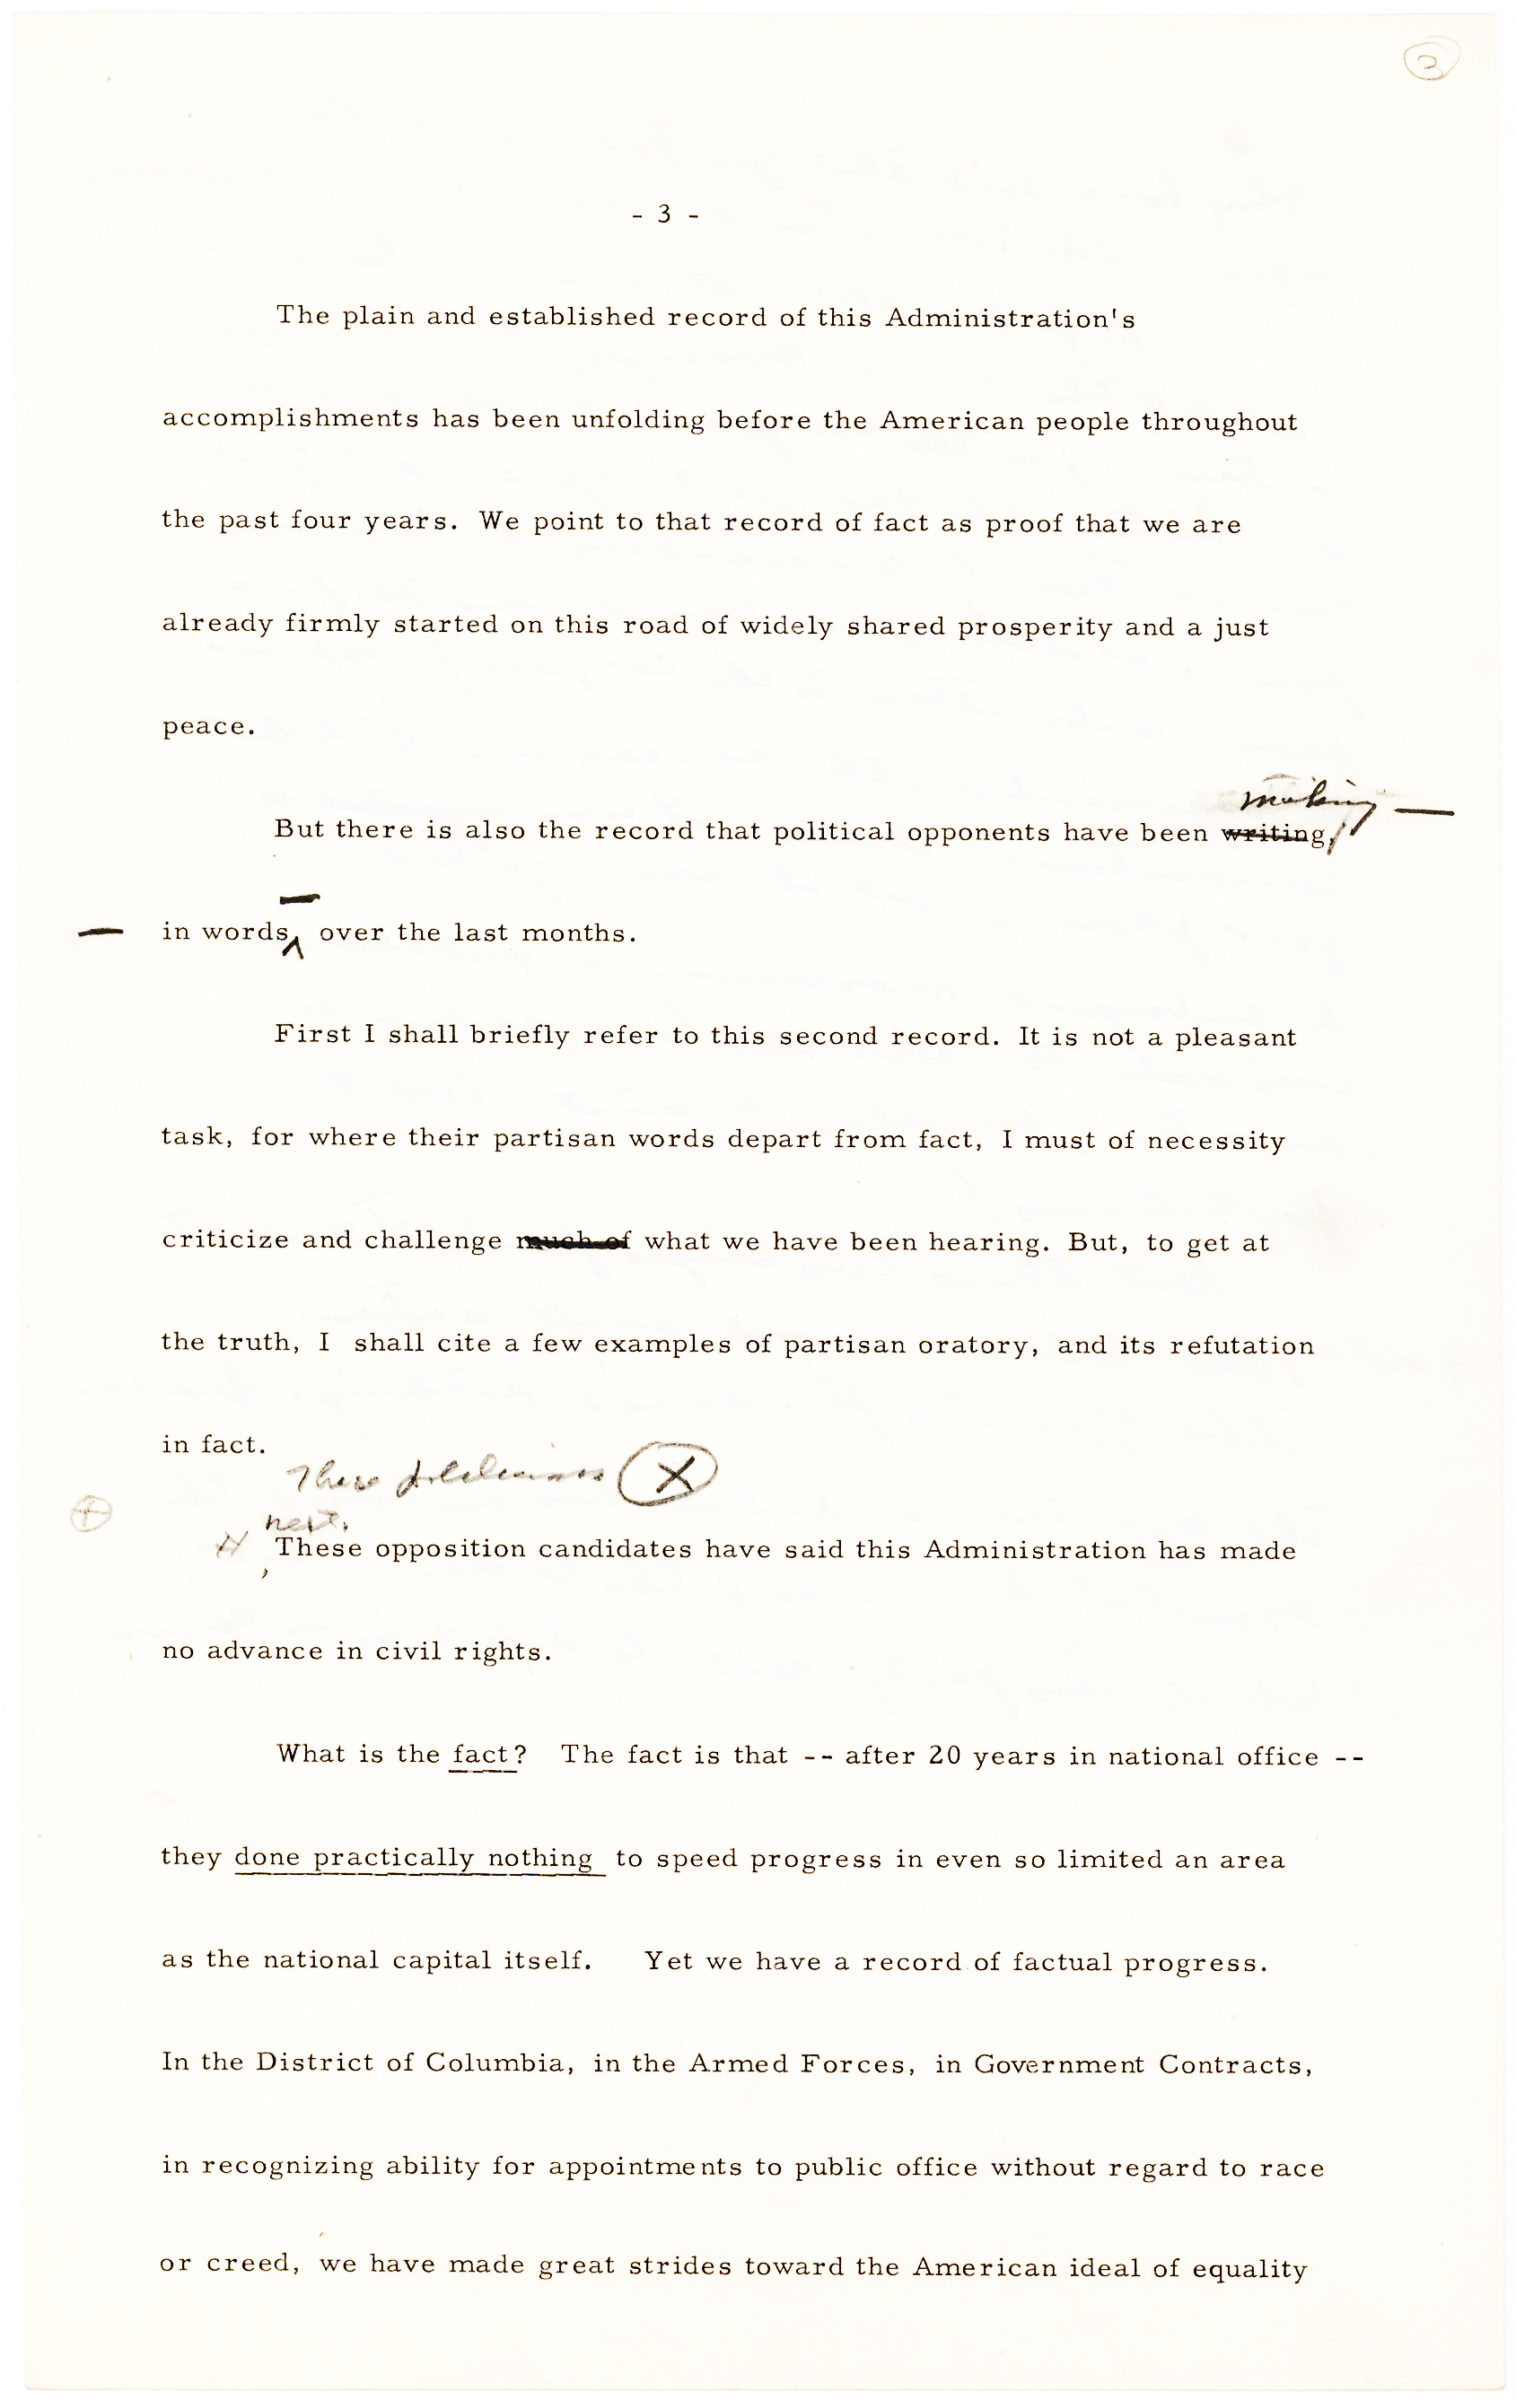 Six Pages of One of Eisenhower's Last Speeches Drafted Before Election Day 1956, Given at Pittsburgh's Hunt Armory